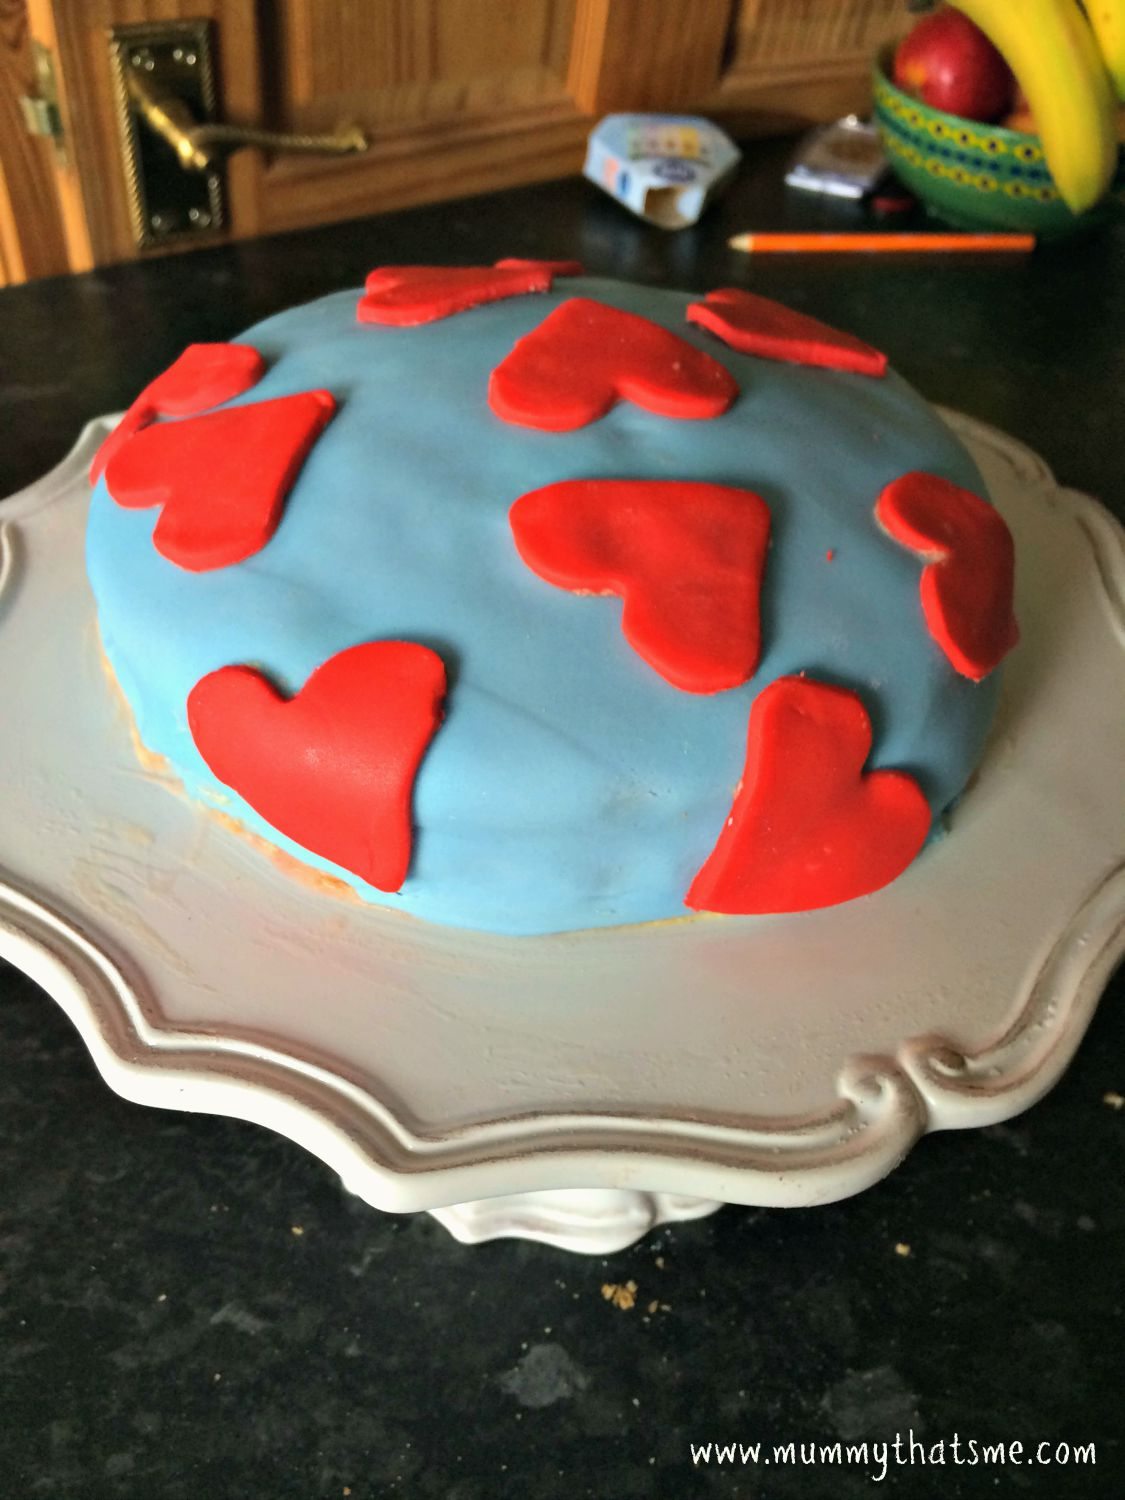 Cake Craft And Decoration Competition : Cake Decorating with Renshaw and Giveaway - Mum, Thats Me